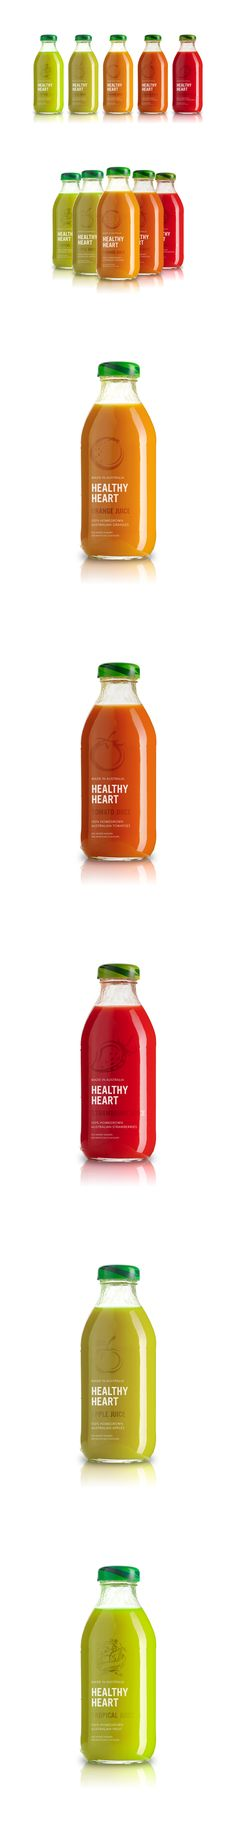 Healthy Heart Juice by Matt Ivory, via Behance *** Label design for independent company, Healthy Heart.